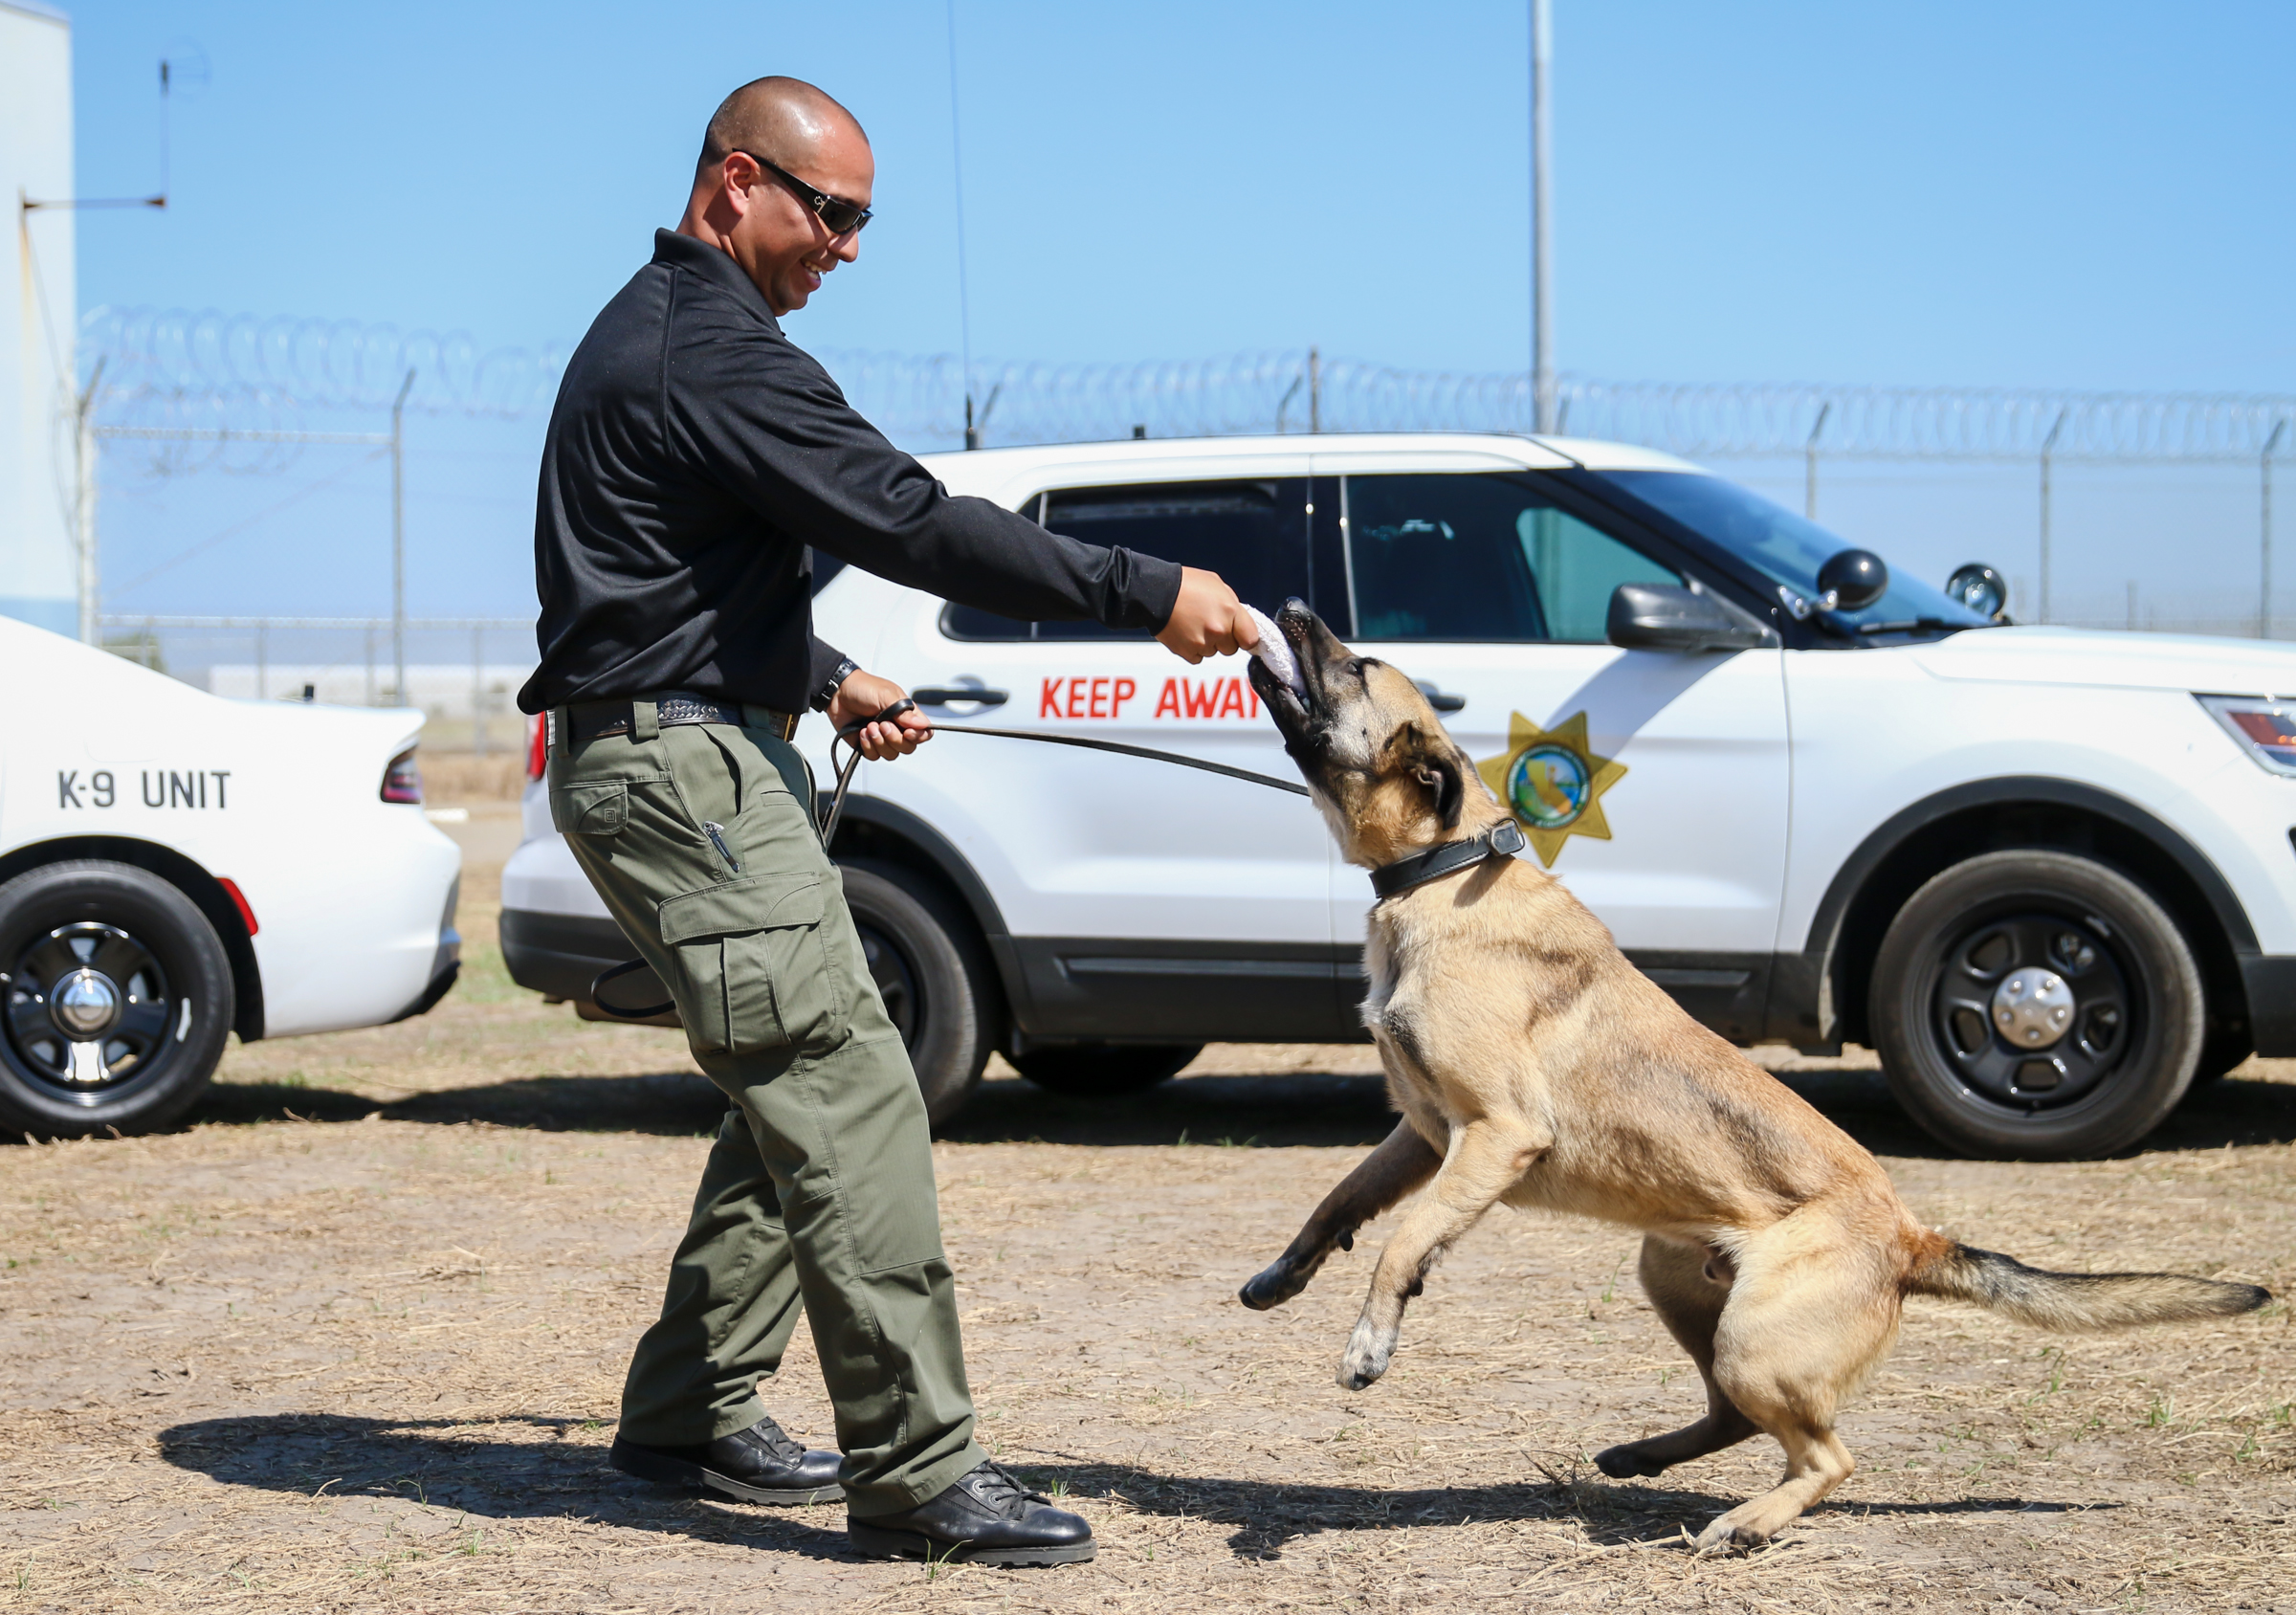 Officer and dog play.